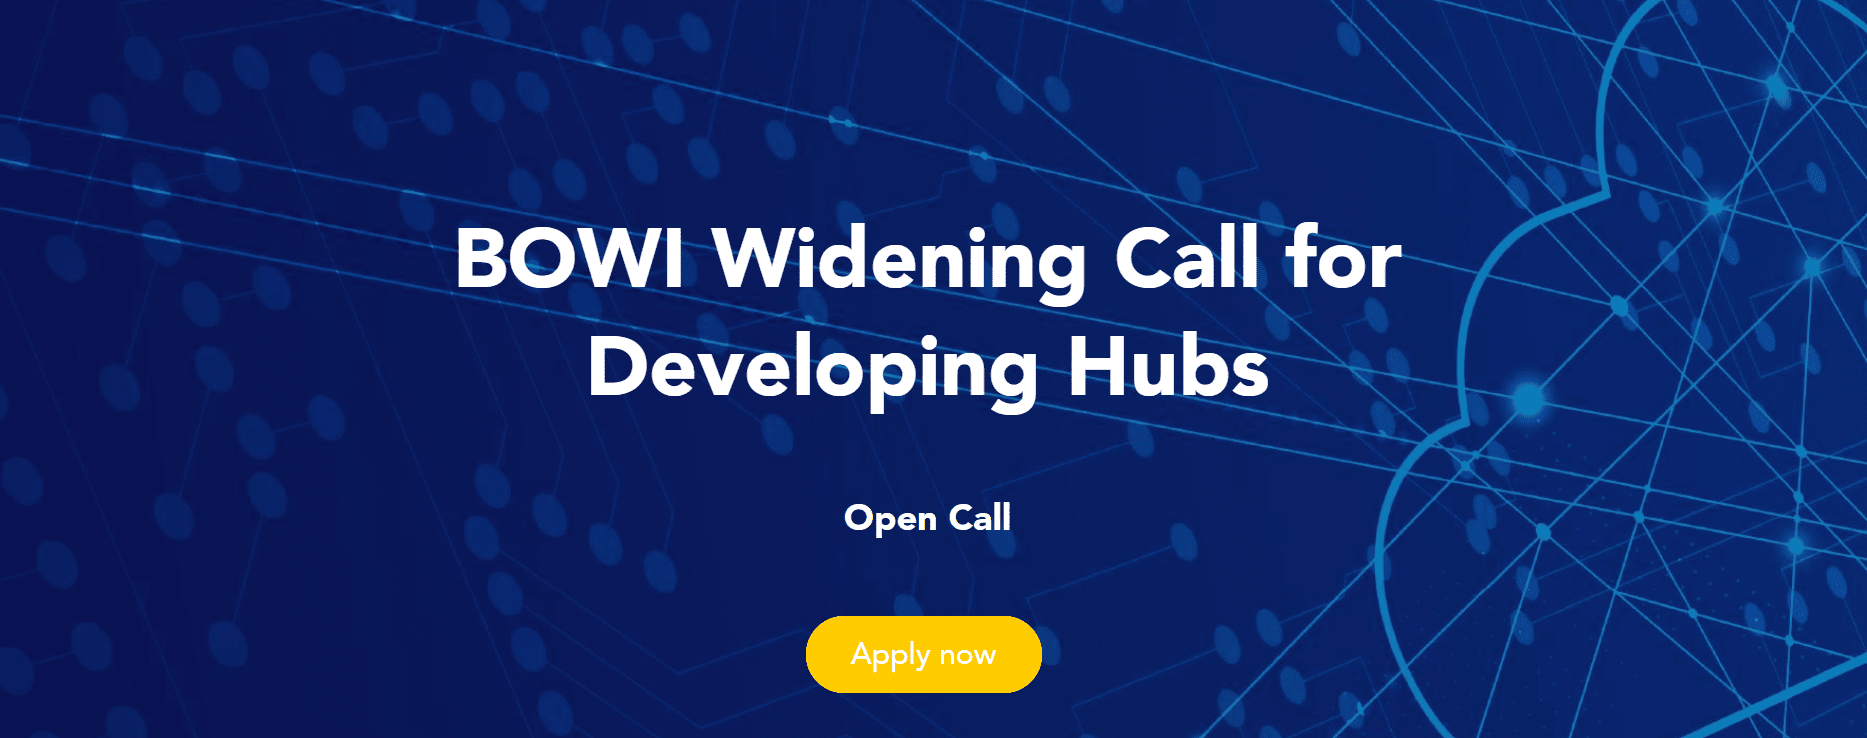 BOWI Widening Call for Developing Hubs